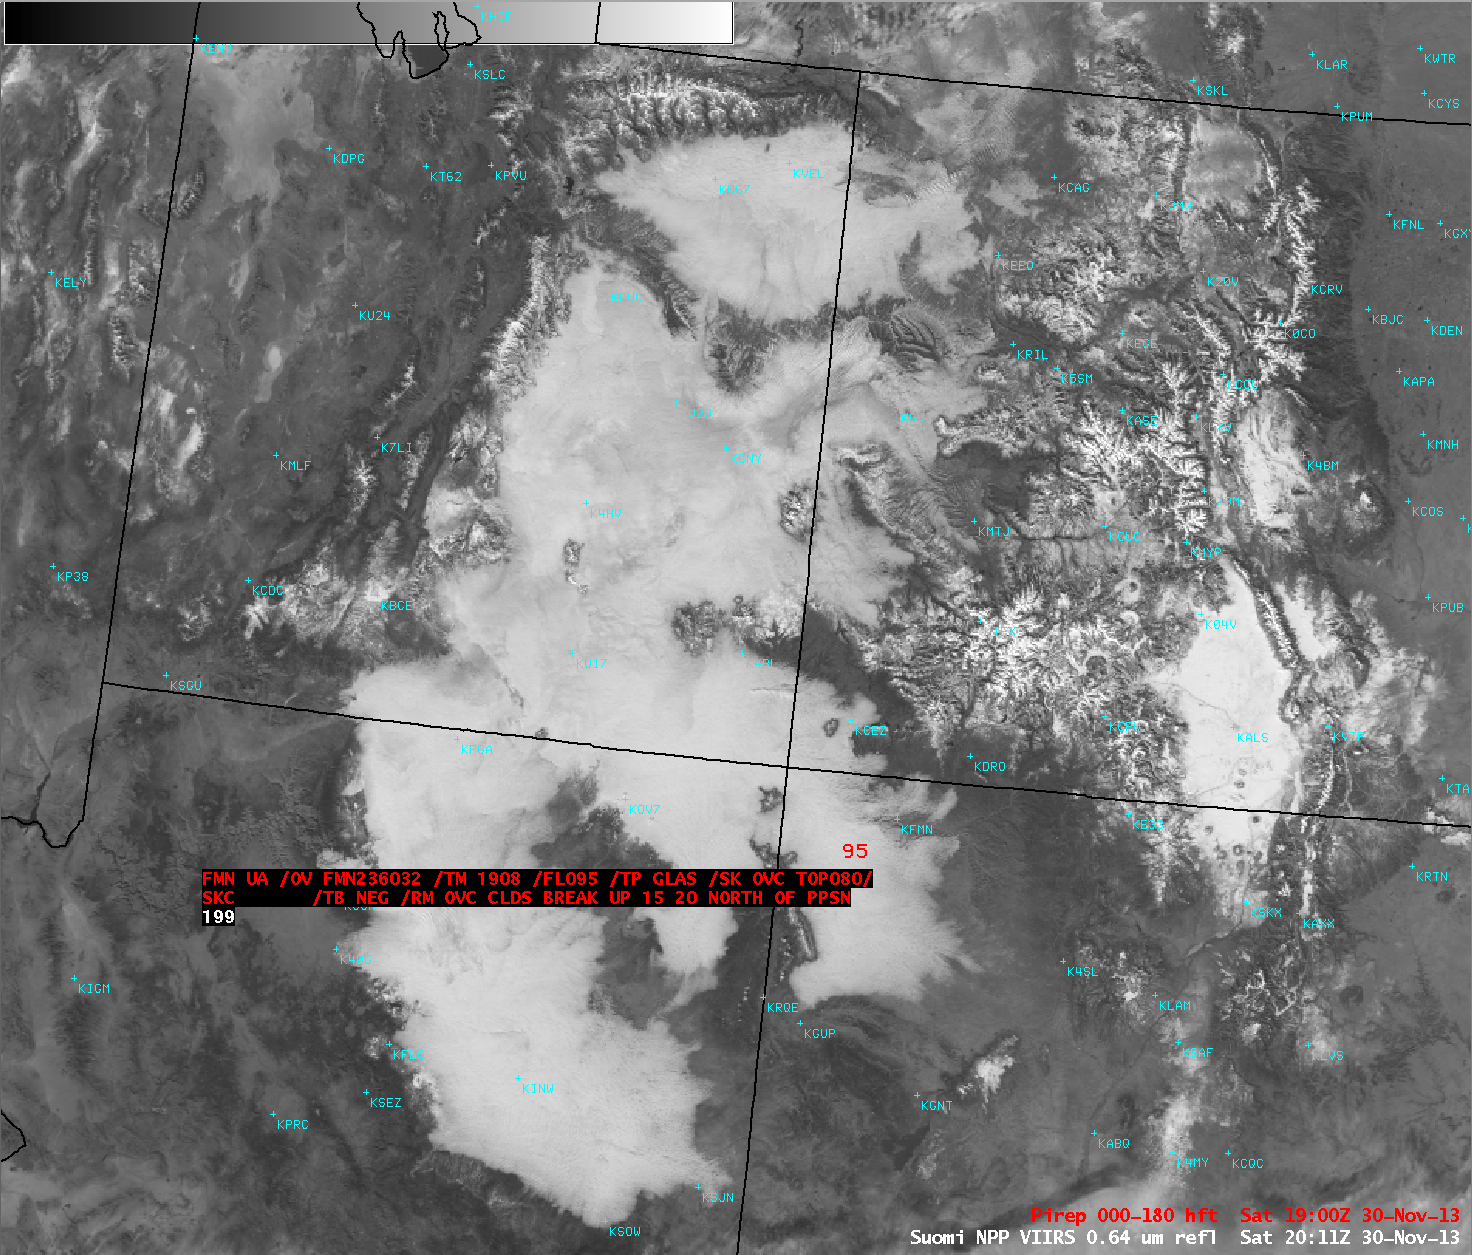 Suomi NPP VIIRS 0.64 µm visible channel image with pilot report of cloud top height